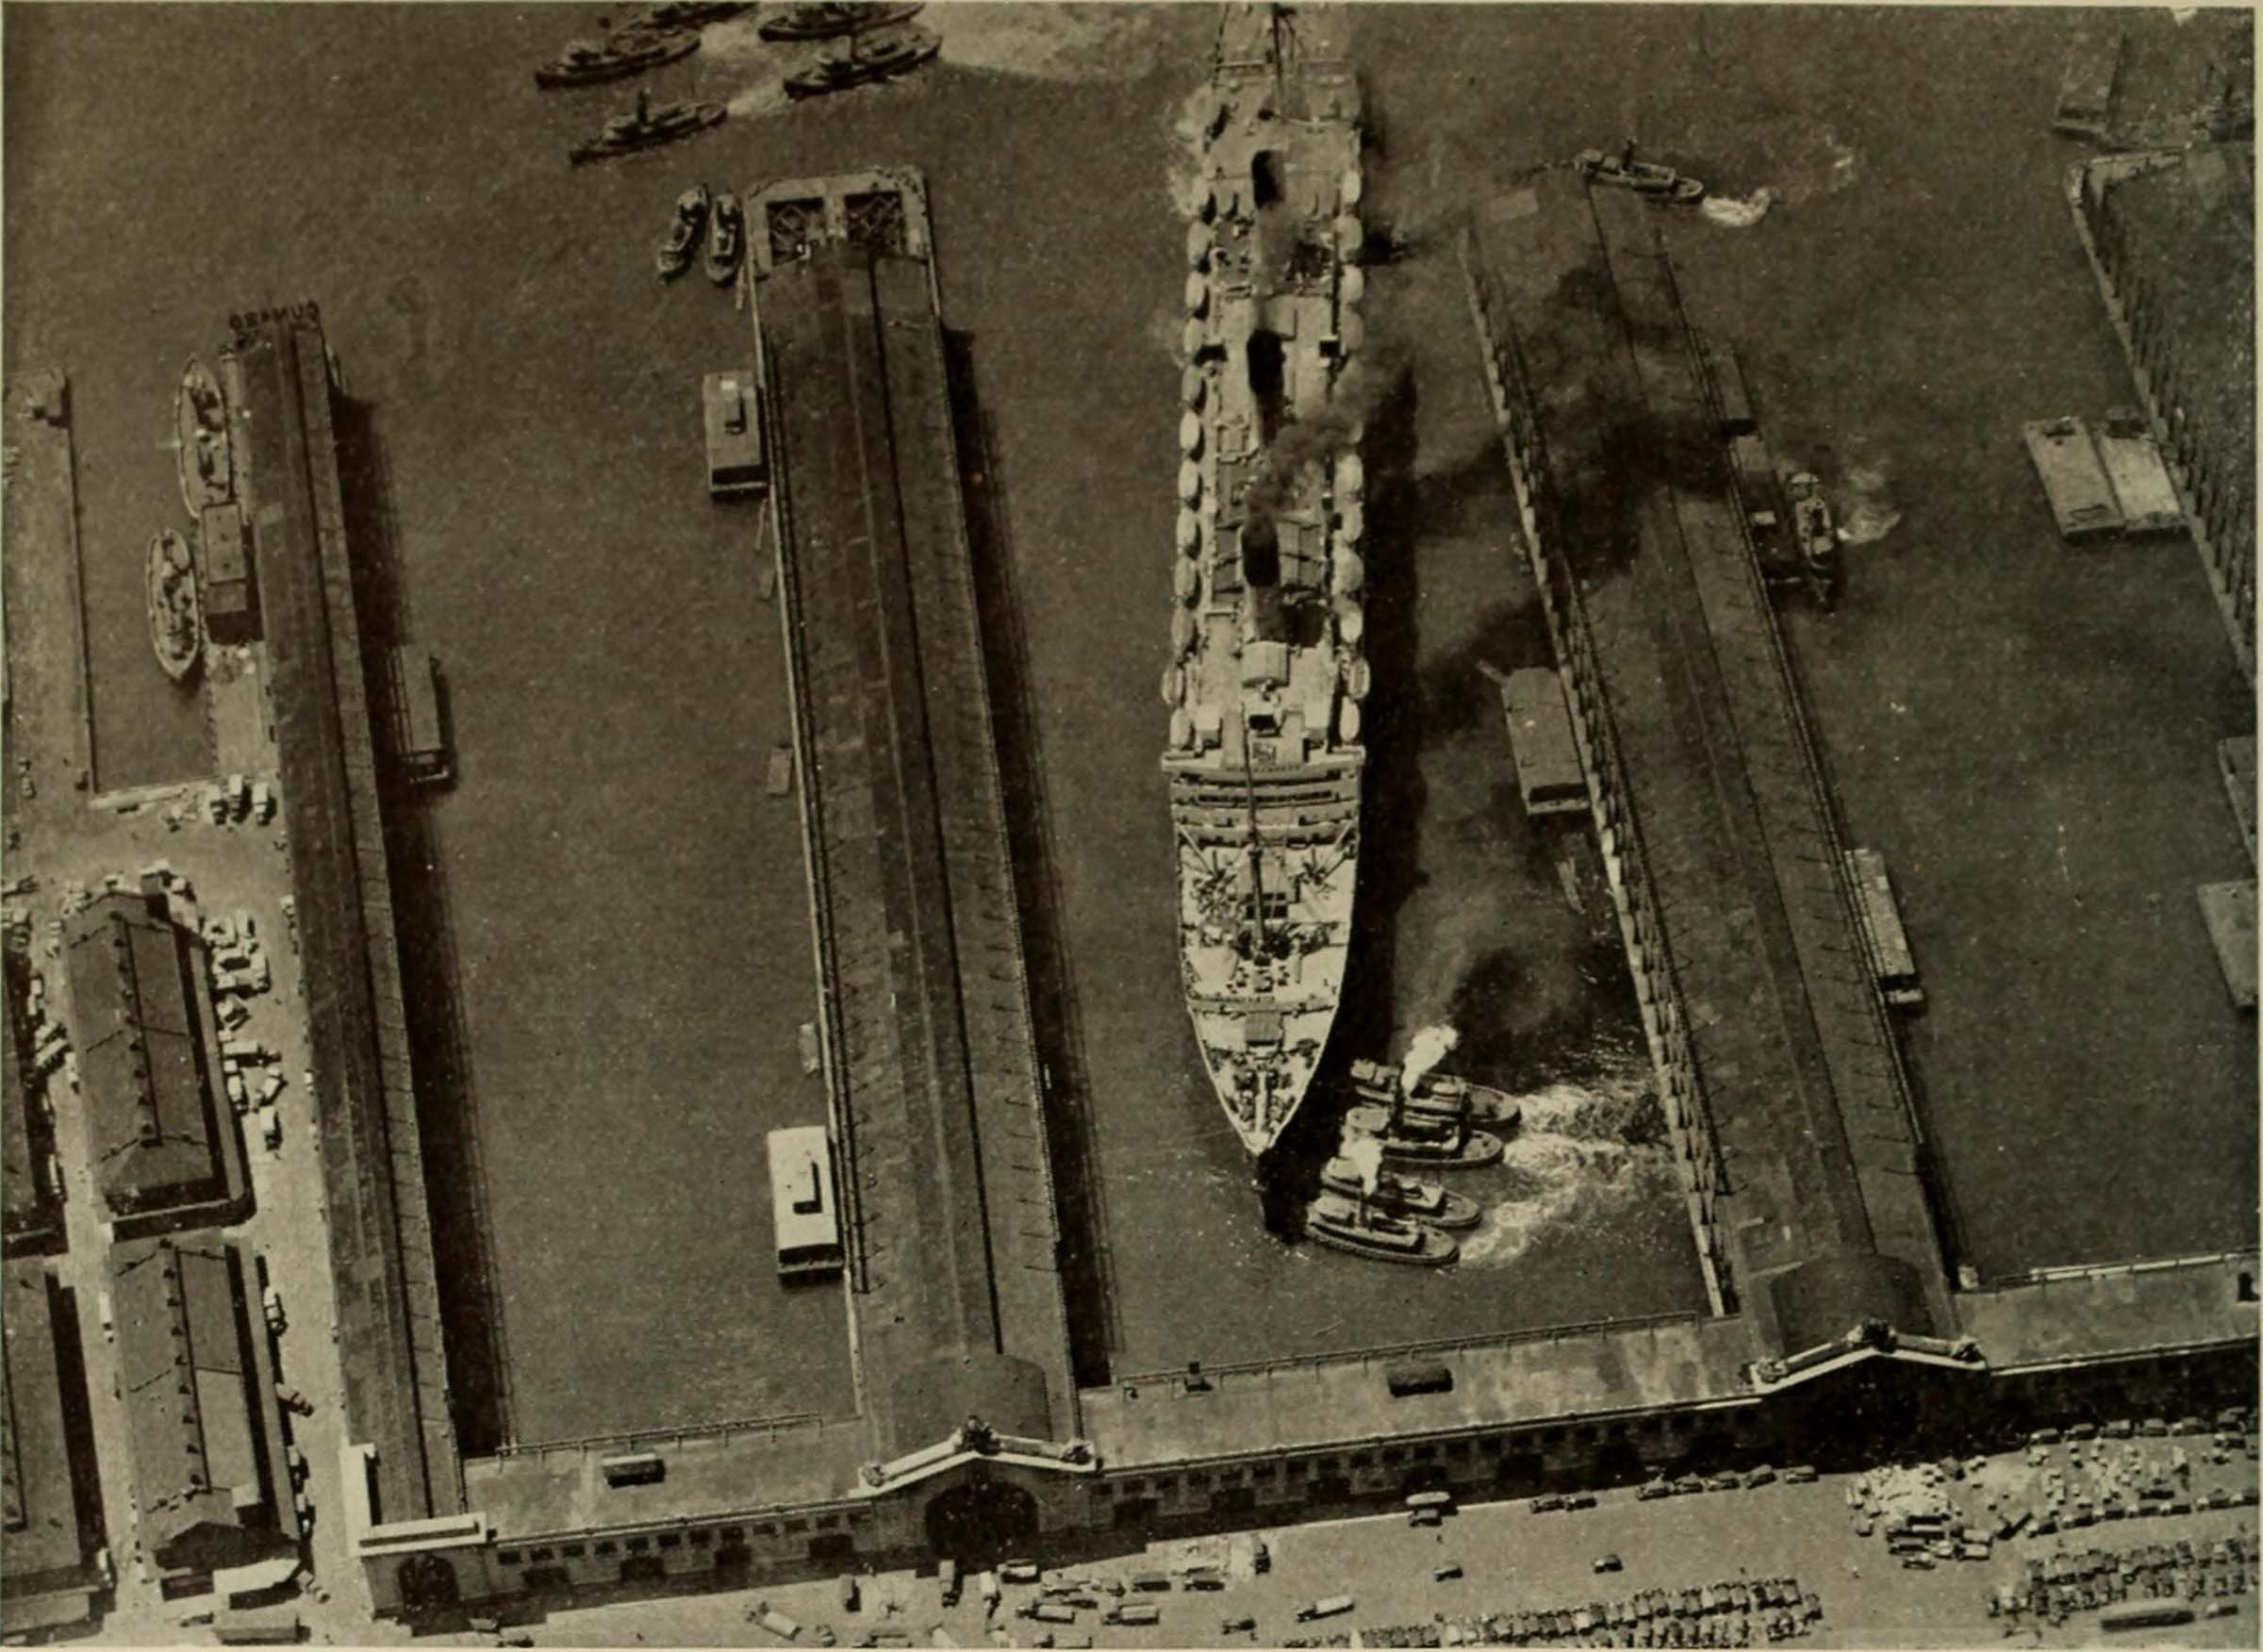 Historic image of a cruise ship pulling into the piers by the bulkhead